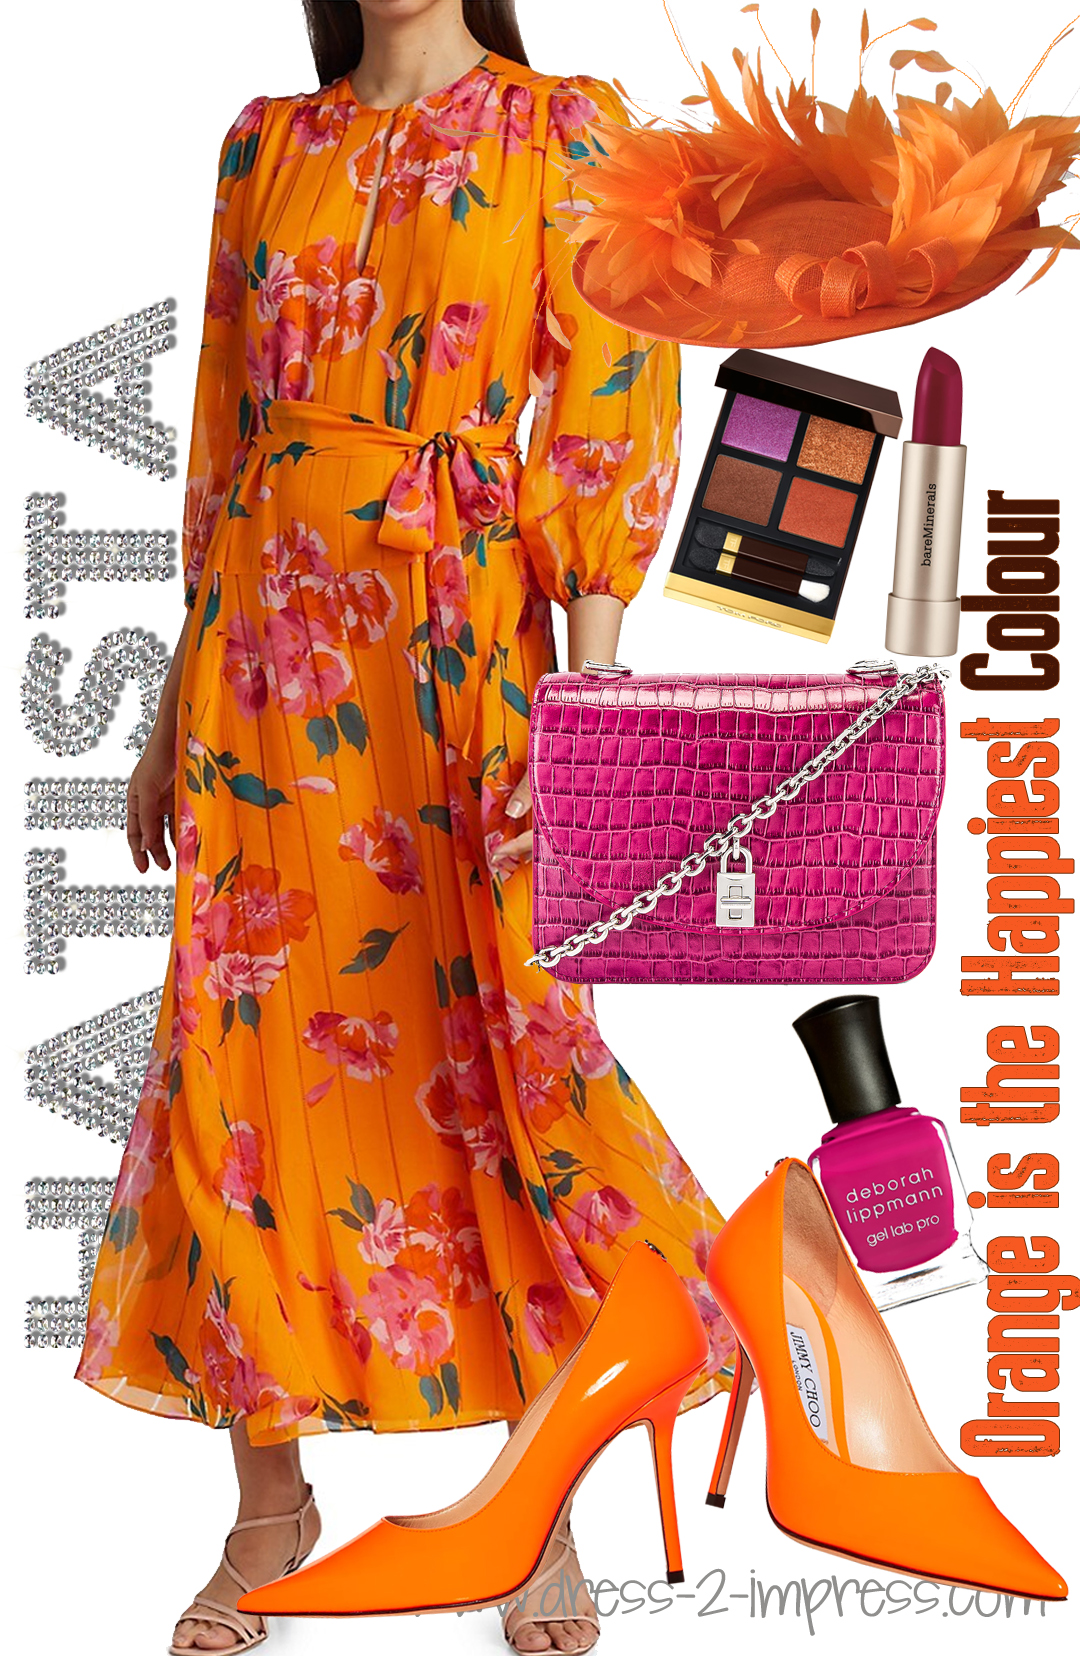 What to wear for Royal Ascot. Bold Floral Print Dresses. Floral Outfits for the Races. Royal Ascot Fashion. Dresses for Royal Ascot. Outfit inspiration ideas for the races or summer weddings. #summerweddings #outfits #orangeoutfits #royalascot What to wear to Royal Ascot